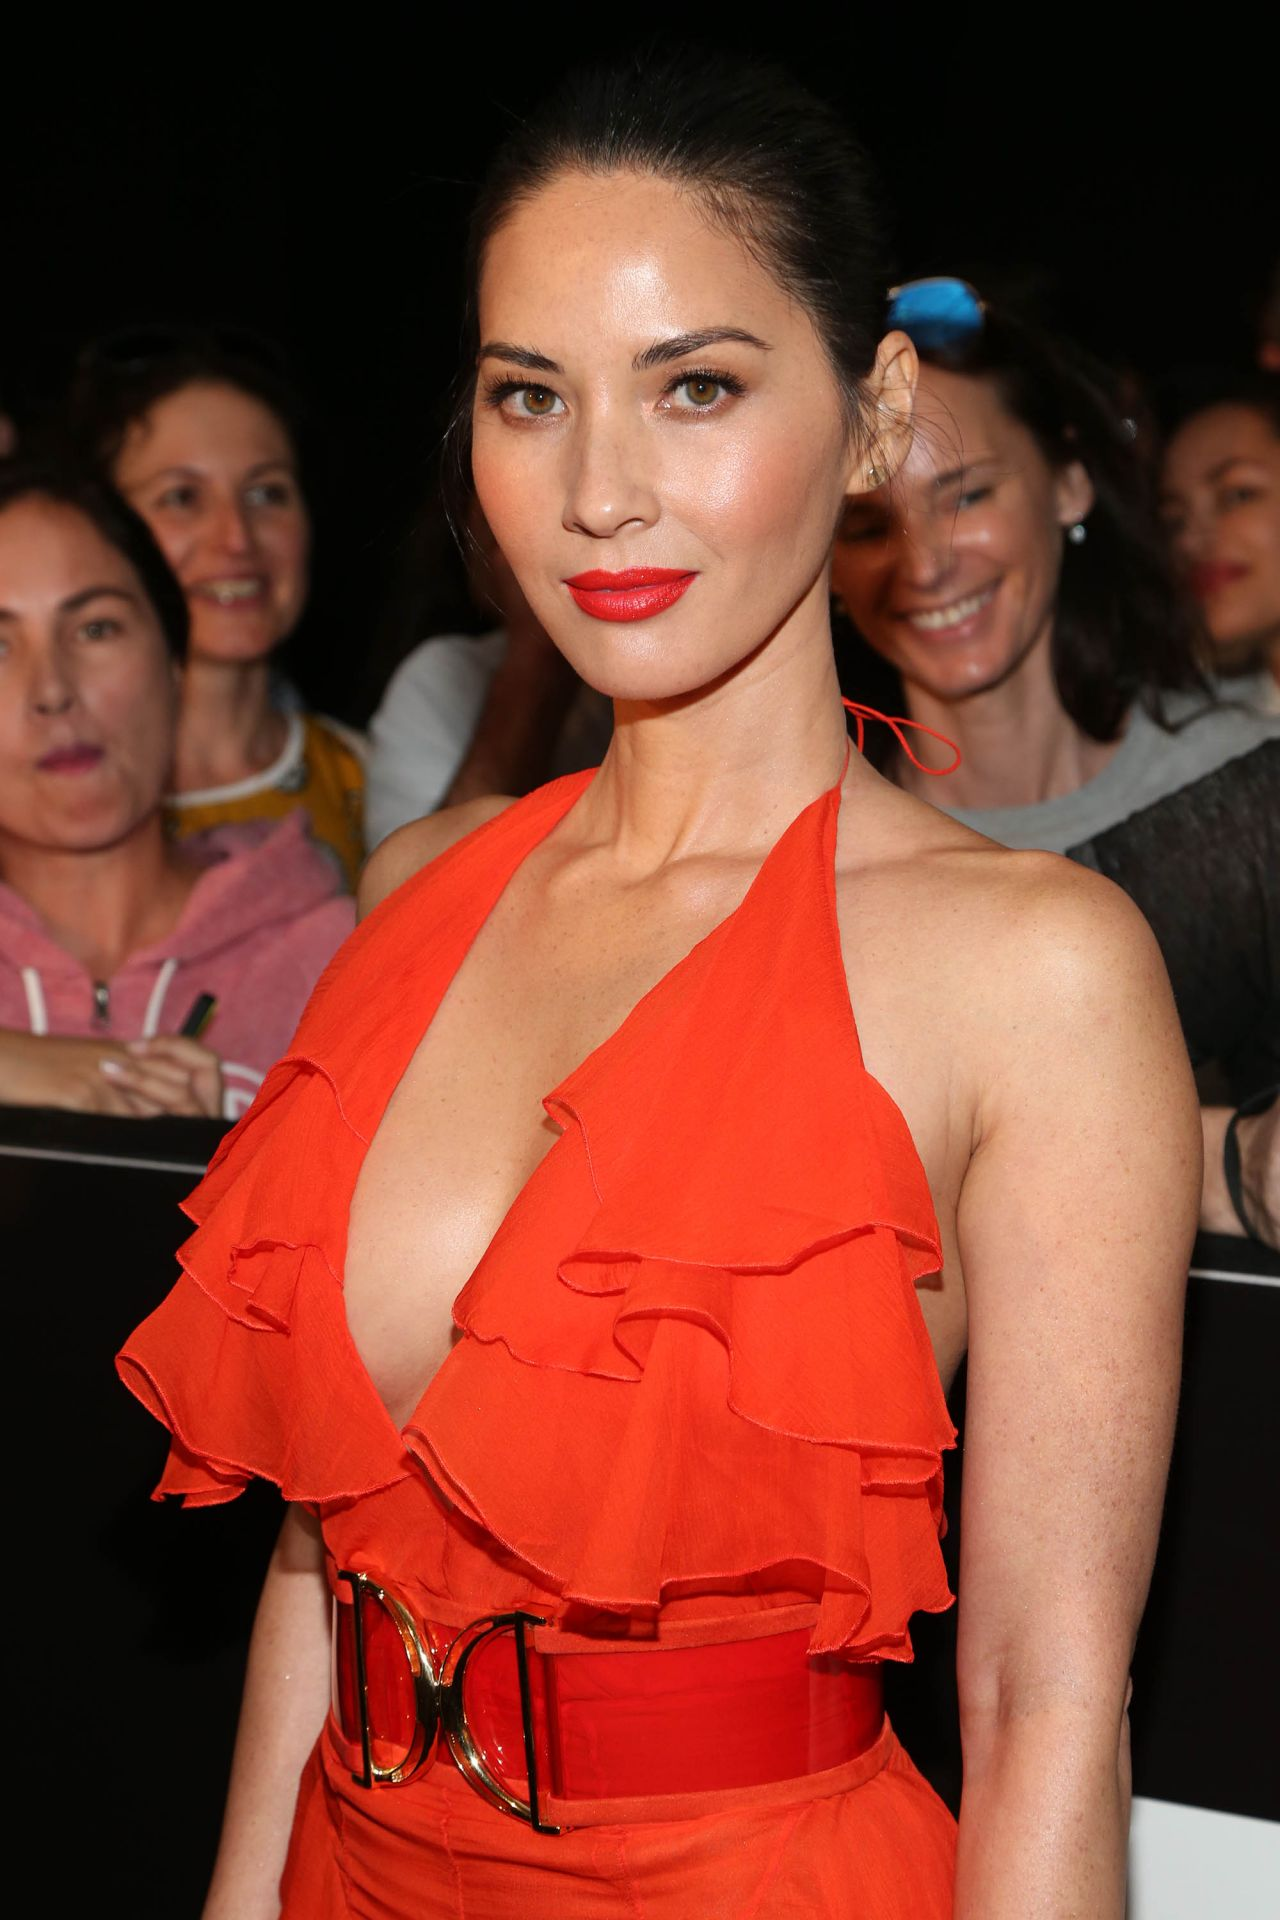 olivia-munn-ride-along-2-premiere-in-miami-1